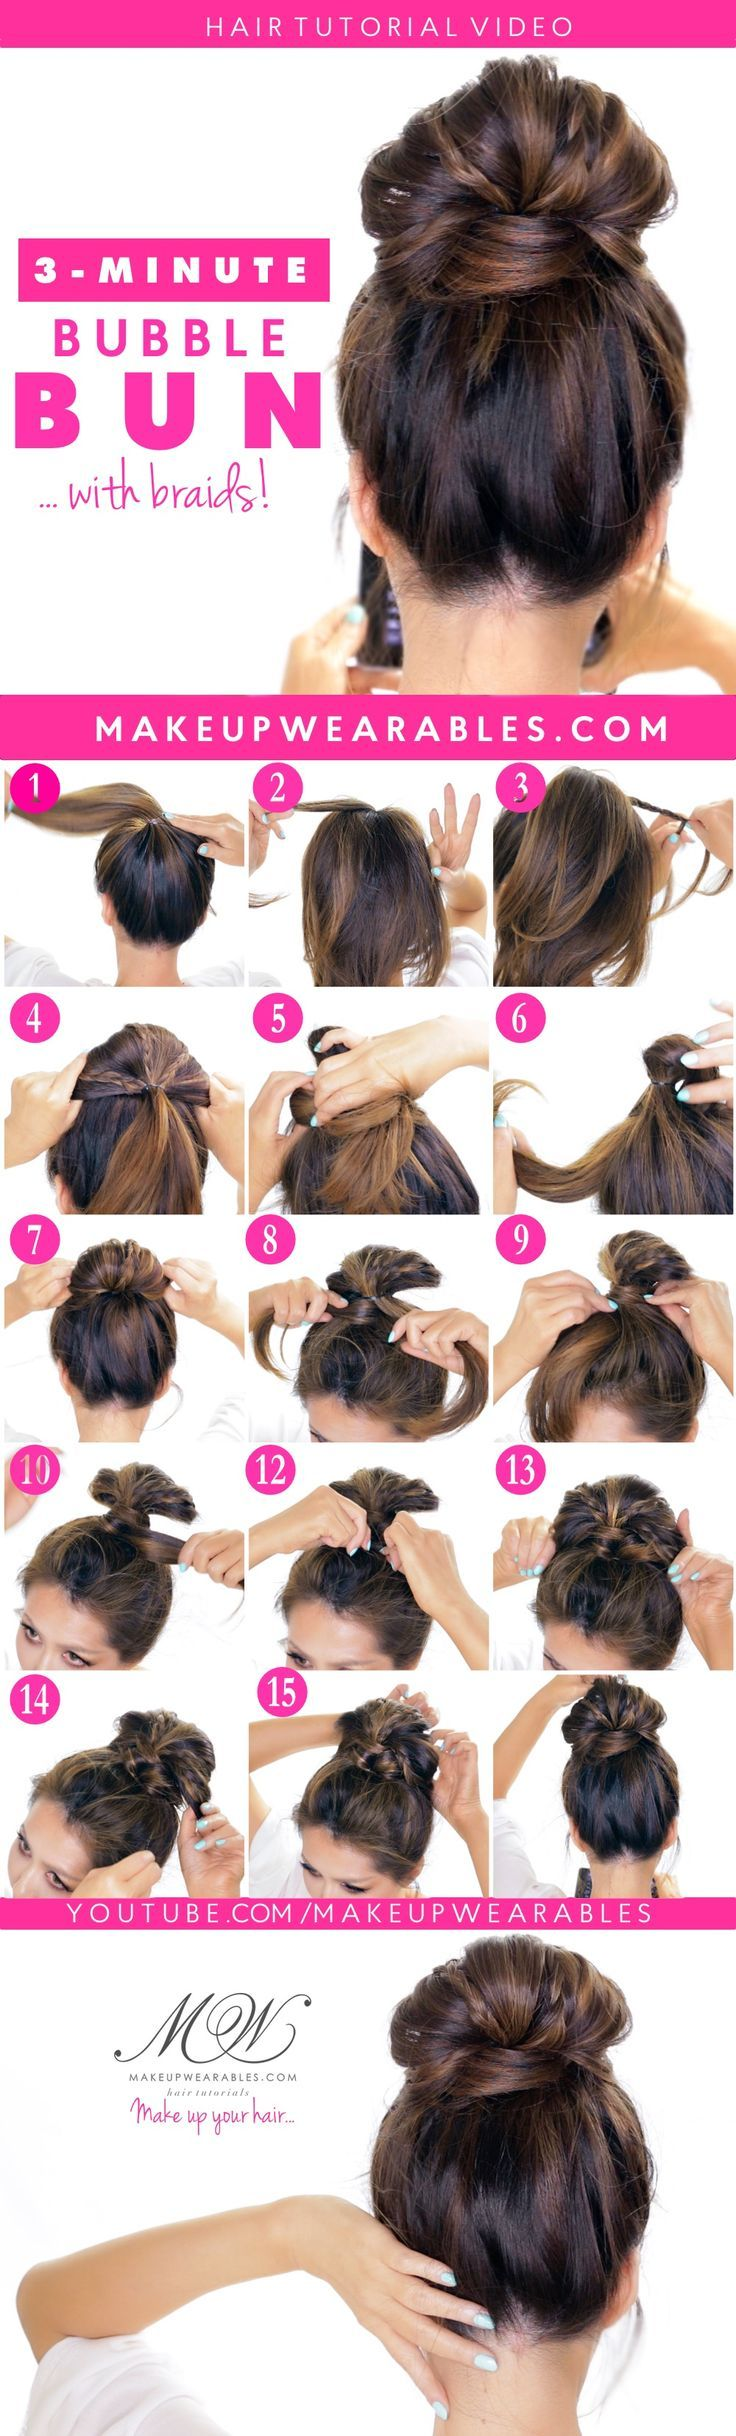 25 trending lazy hair updo ideas on pinterest chignon tutorial easy bubble bun with braids cute updo hairstyles hair style pmusecretfo Gallery